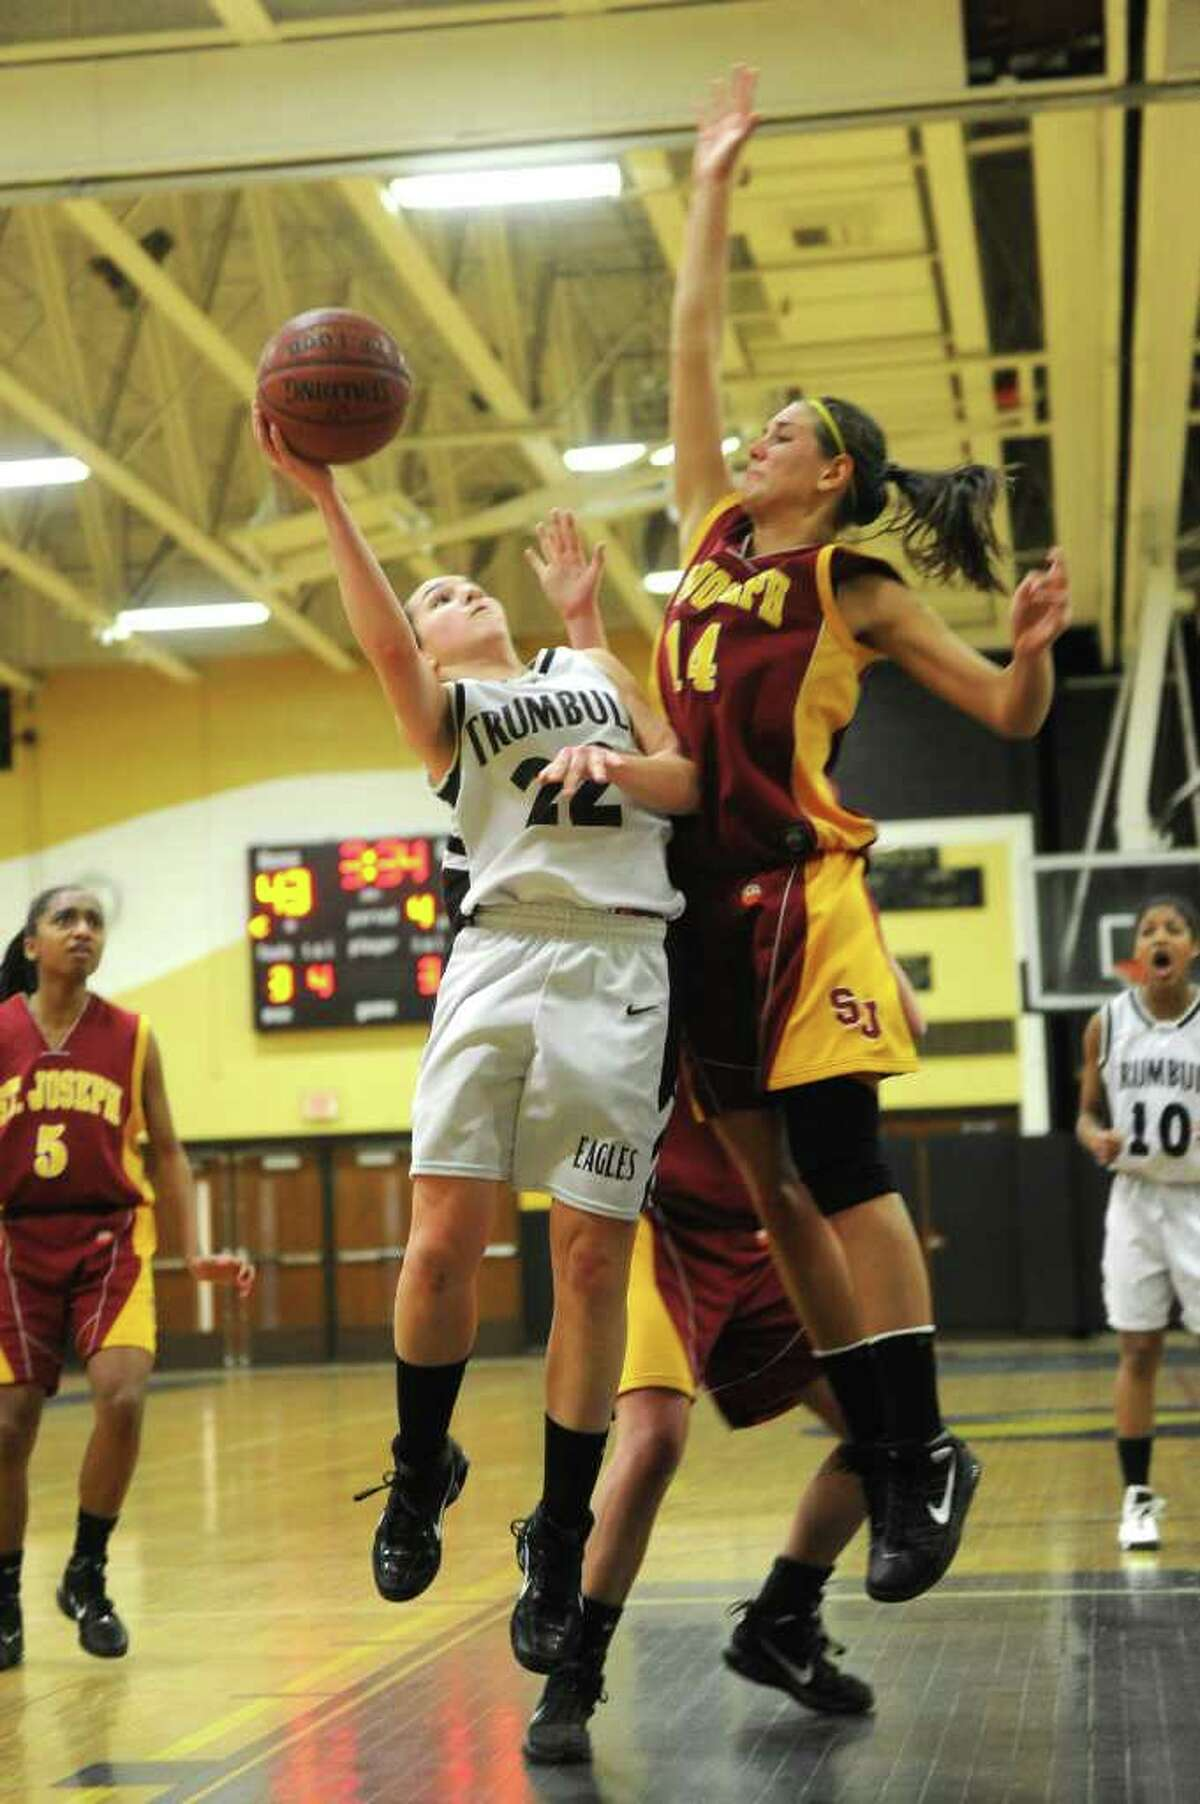 Trumbull's Kelly Coughlin takes a shot as Amaia Gritsko blocks during Tuesday's game at Trumbull High School on January 25, 2011.